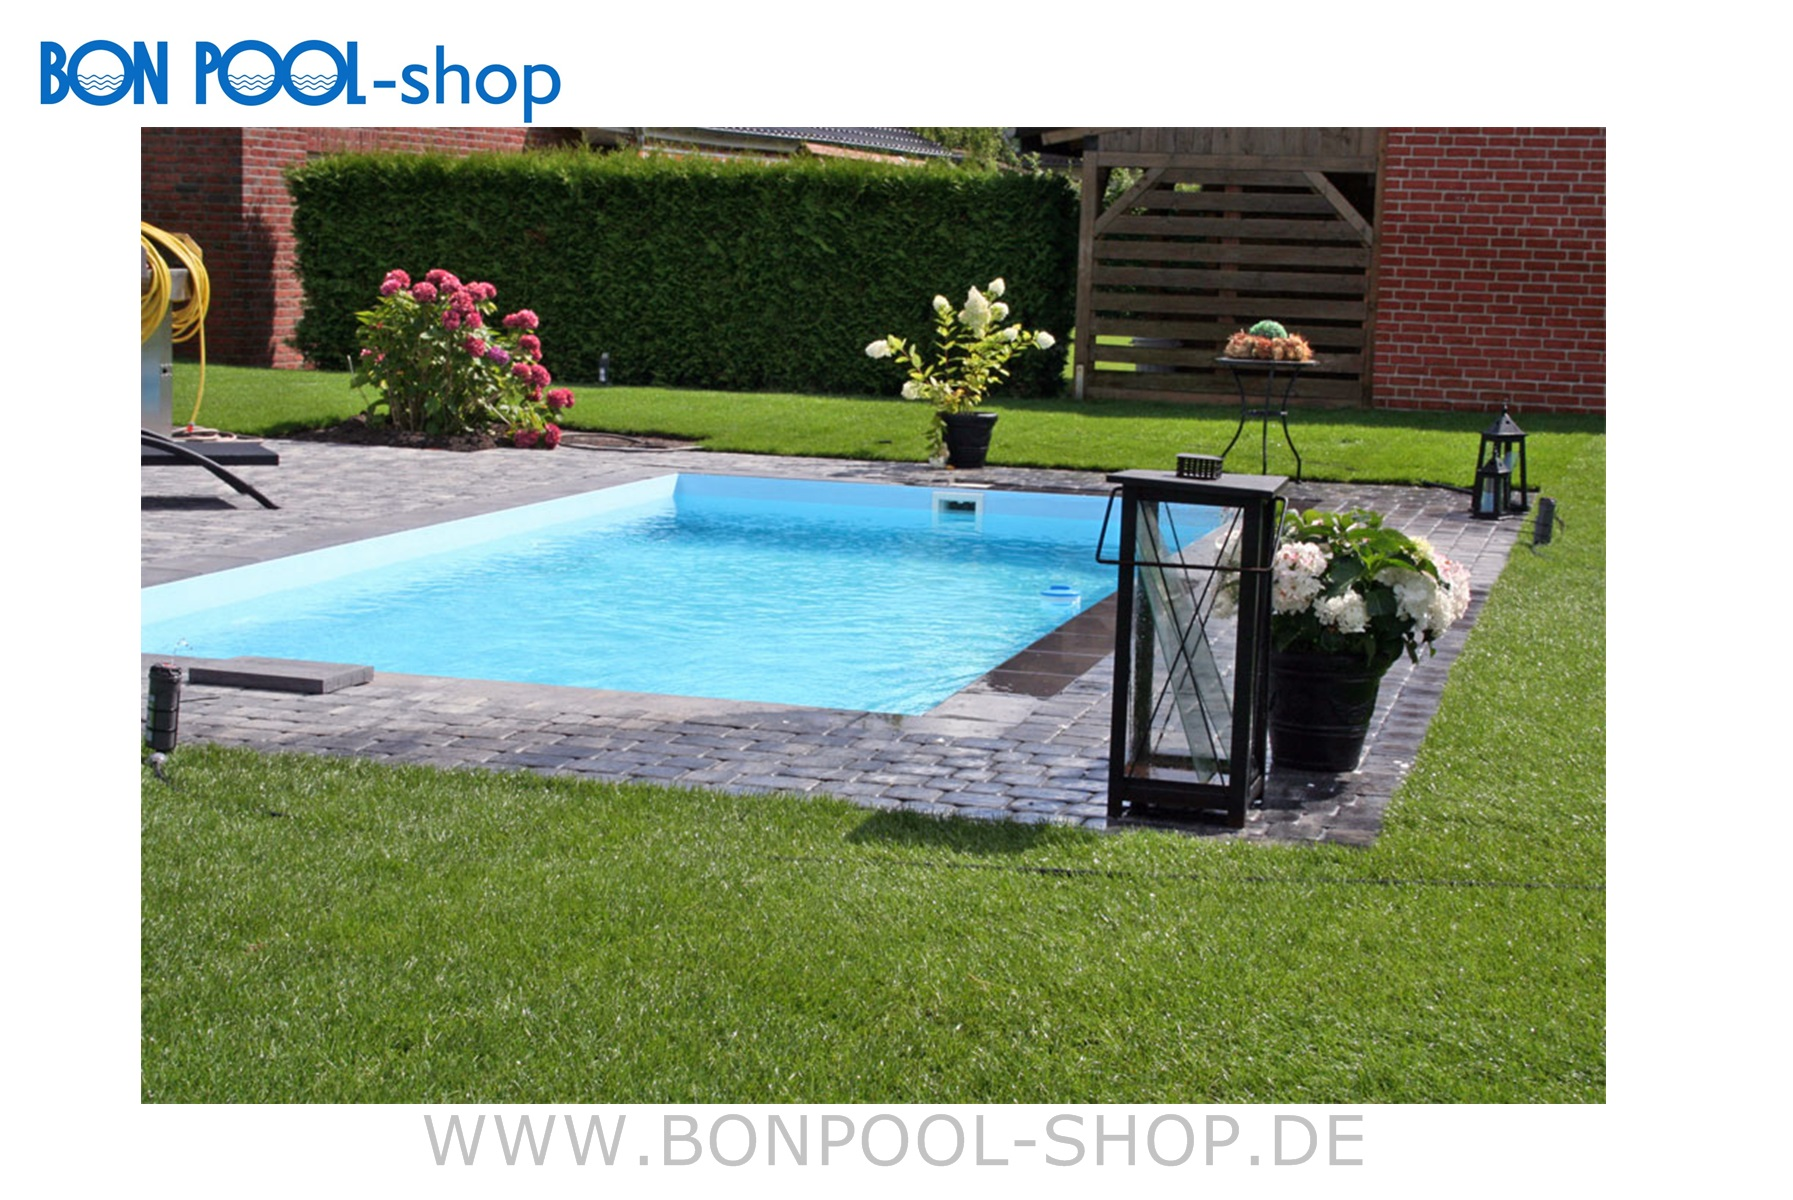 pp kunststoff rechteckbecken 8x4x1 5m bon pool. Black Bedroom Furniture Sets. Home Design Ideas